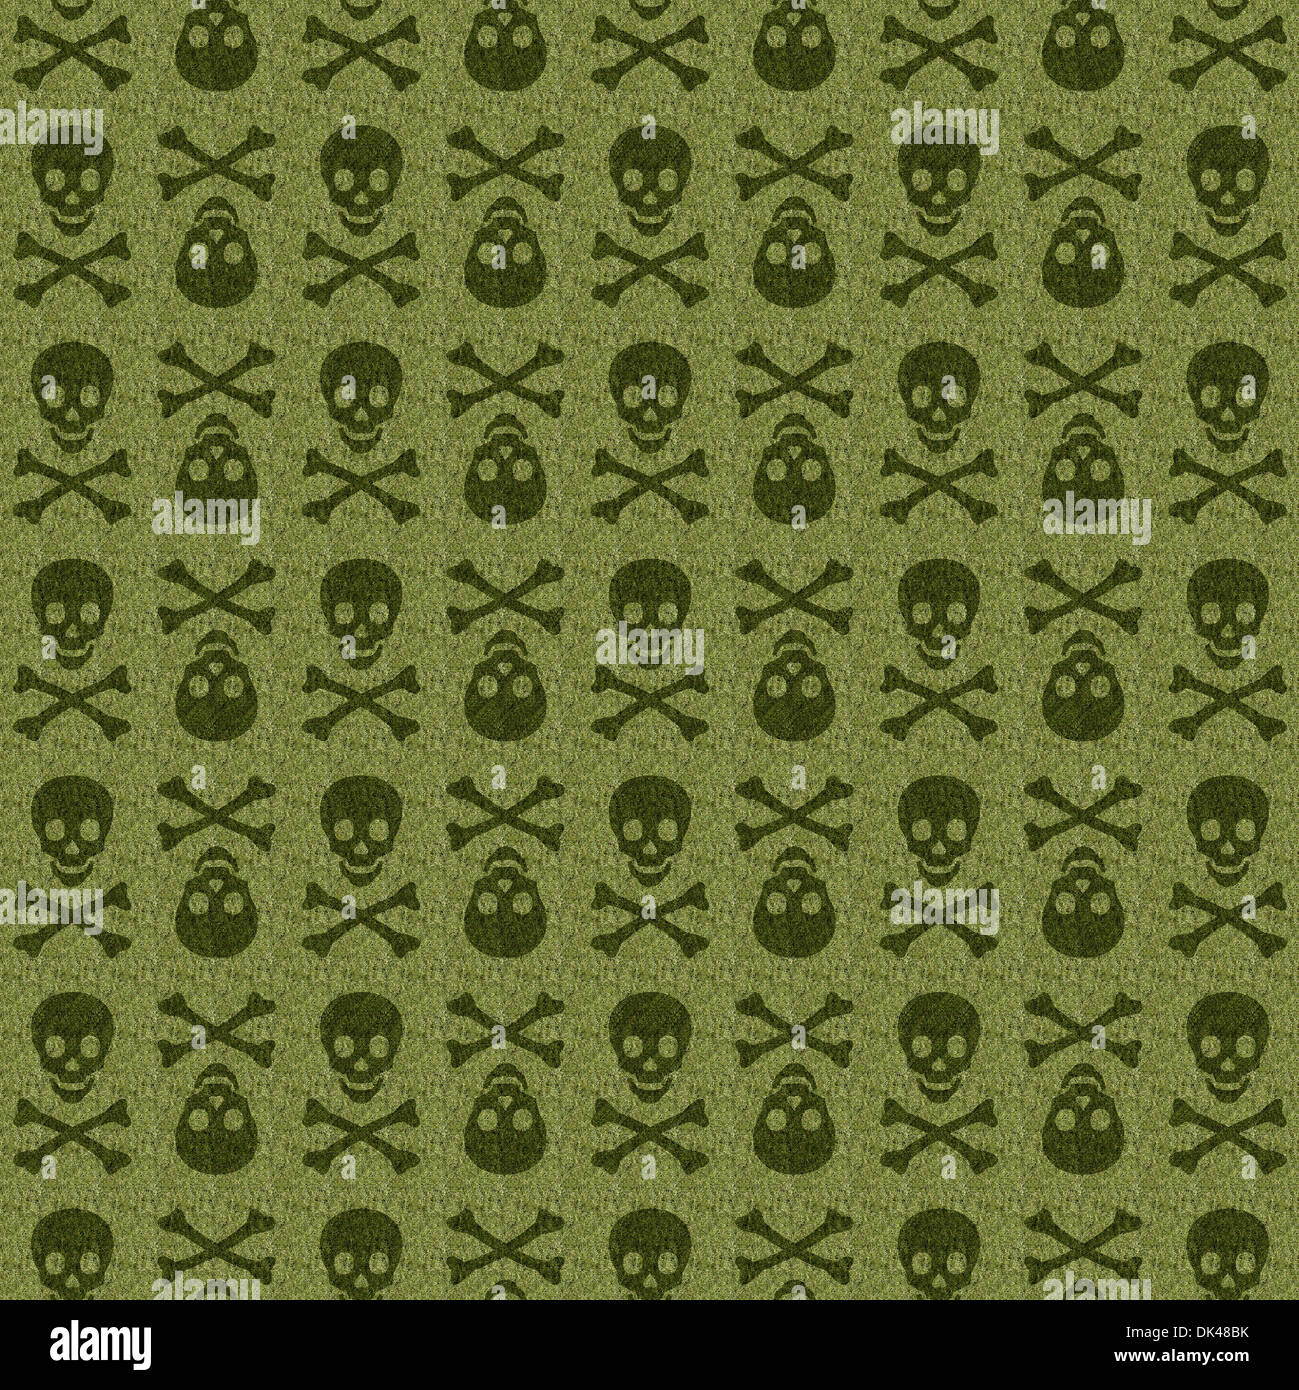 The graphical design in green skull texture - Stock Image